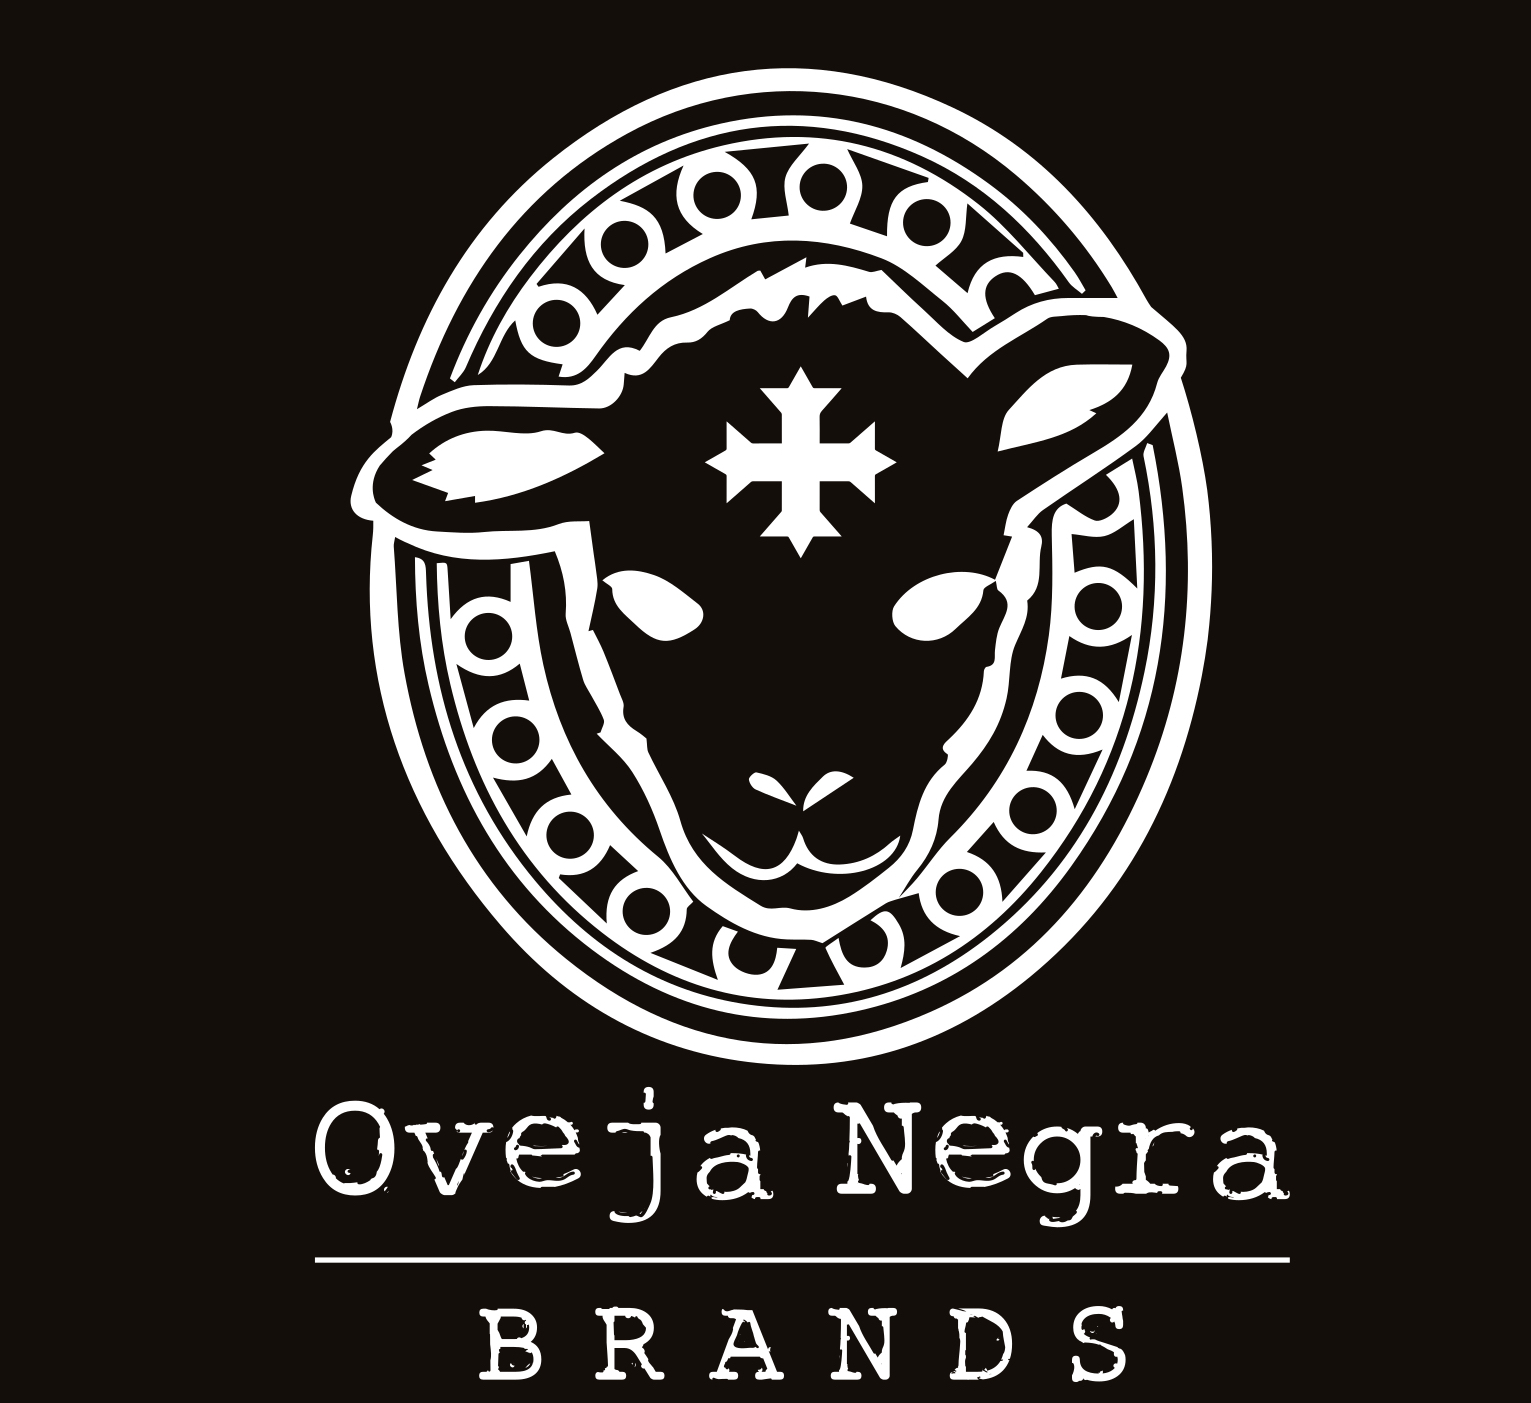 Cigar News: Oveja Negra Brands Launches